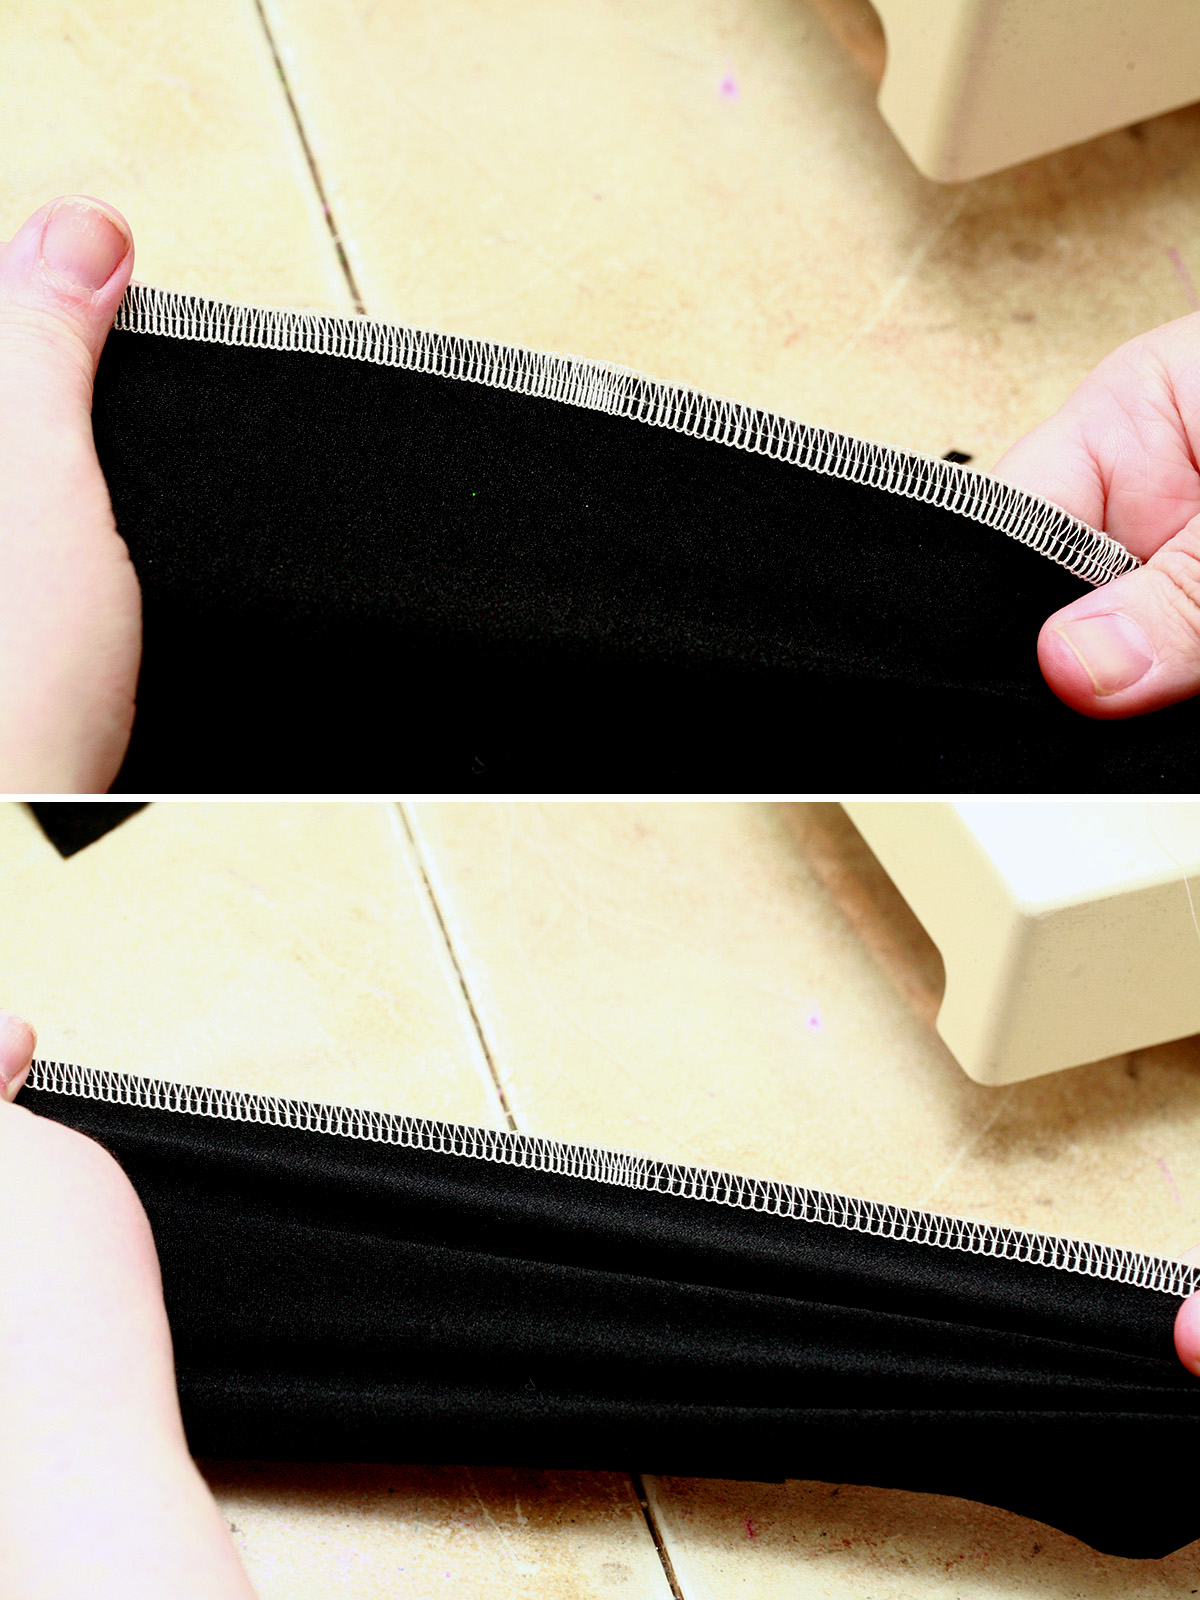 A two aprt compilation image showing a serger seam on a piece of black spandex. The top image shows it unstretched, the bottom image shows it stretched.